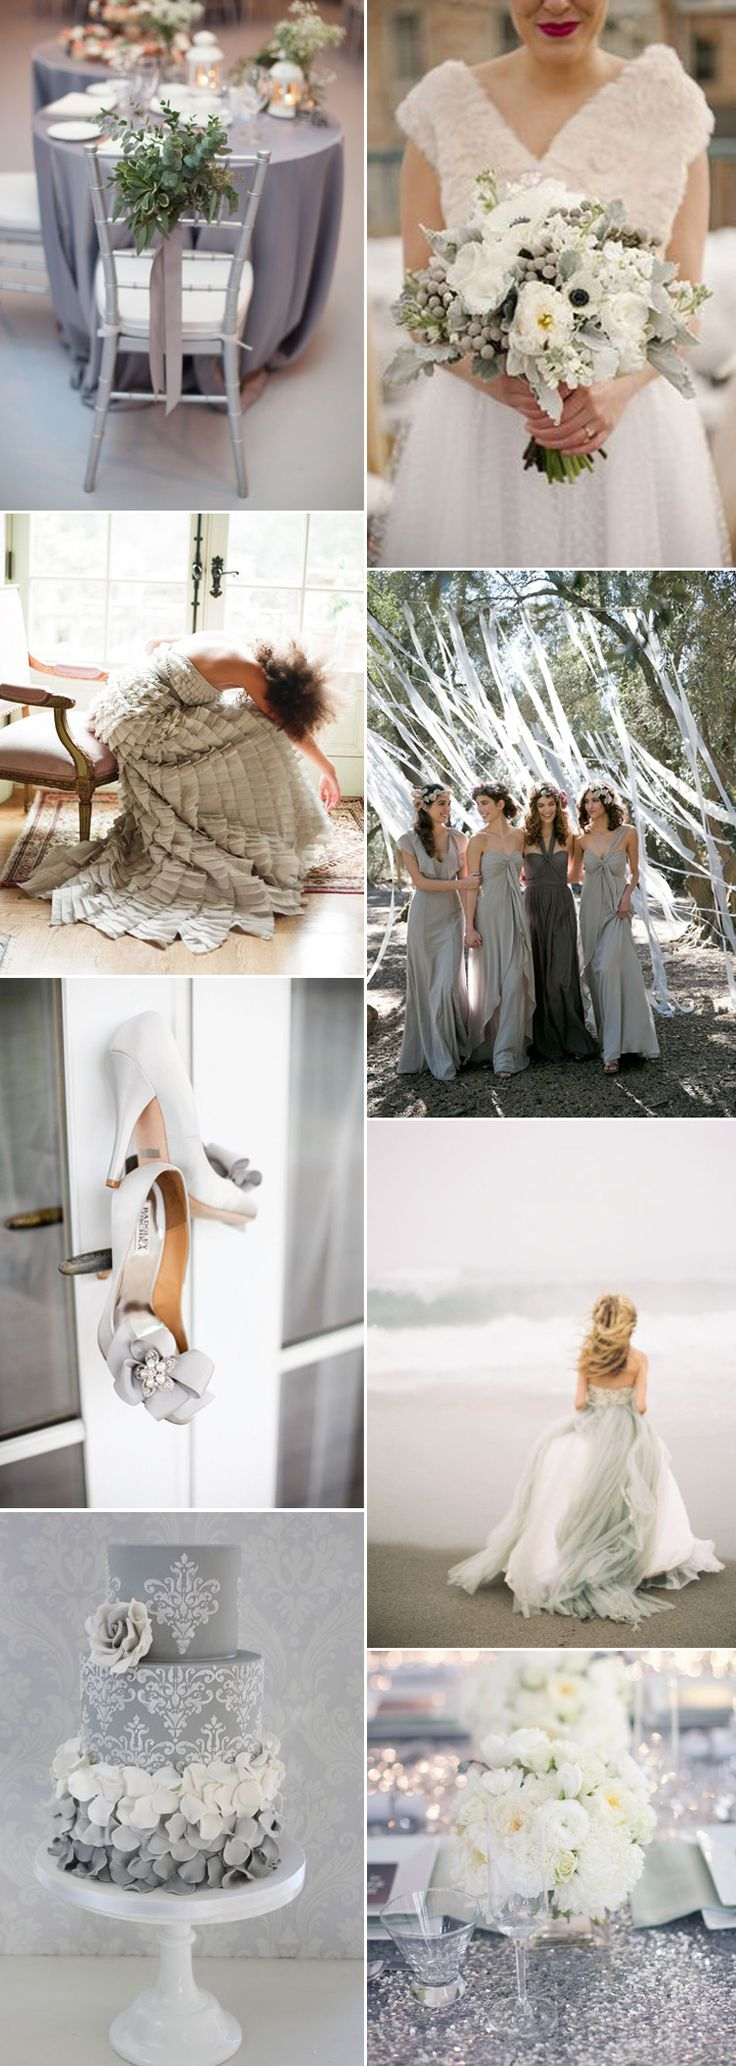 You may be tired of hearing about Fifty Shades of Grey but we're going for the classy way with gorgeous ideas for a grey wedding color scheme